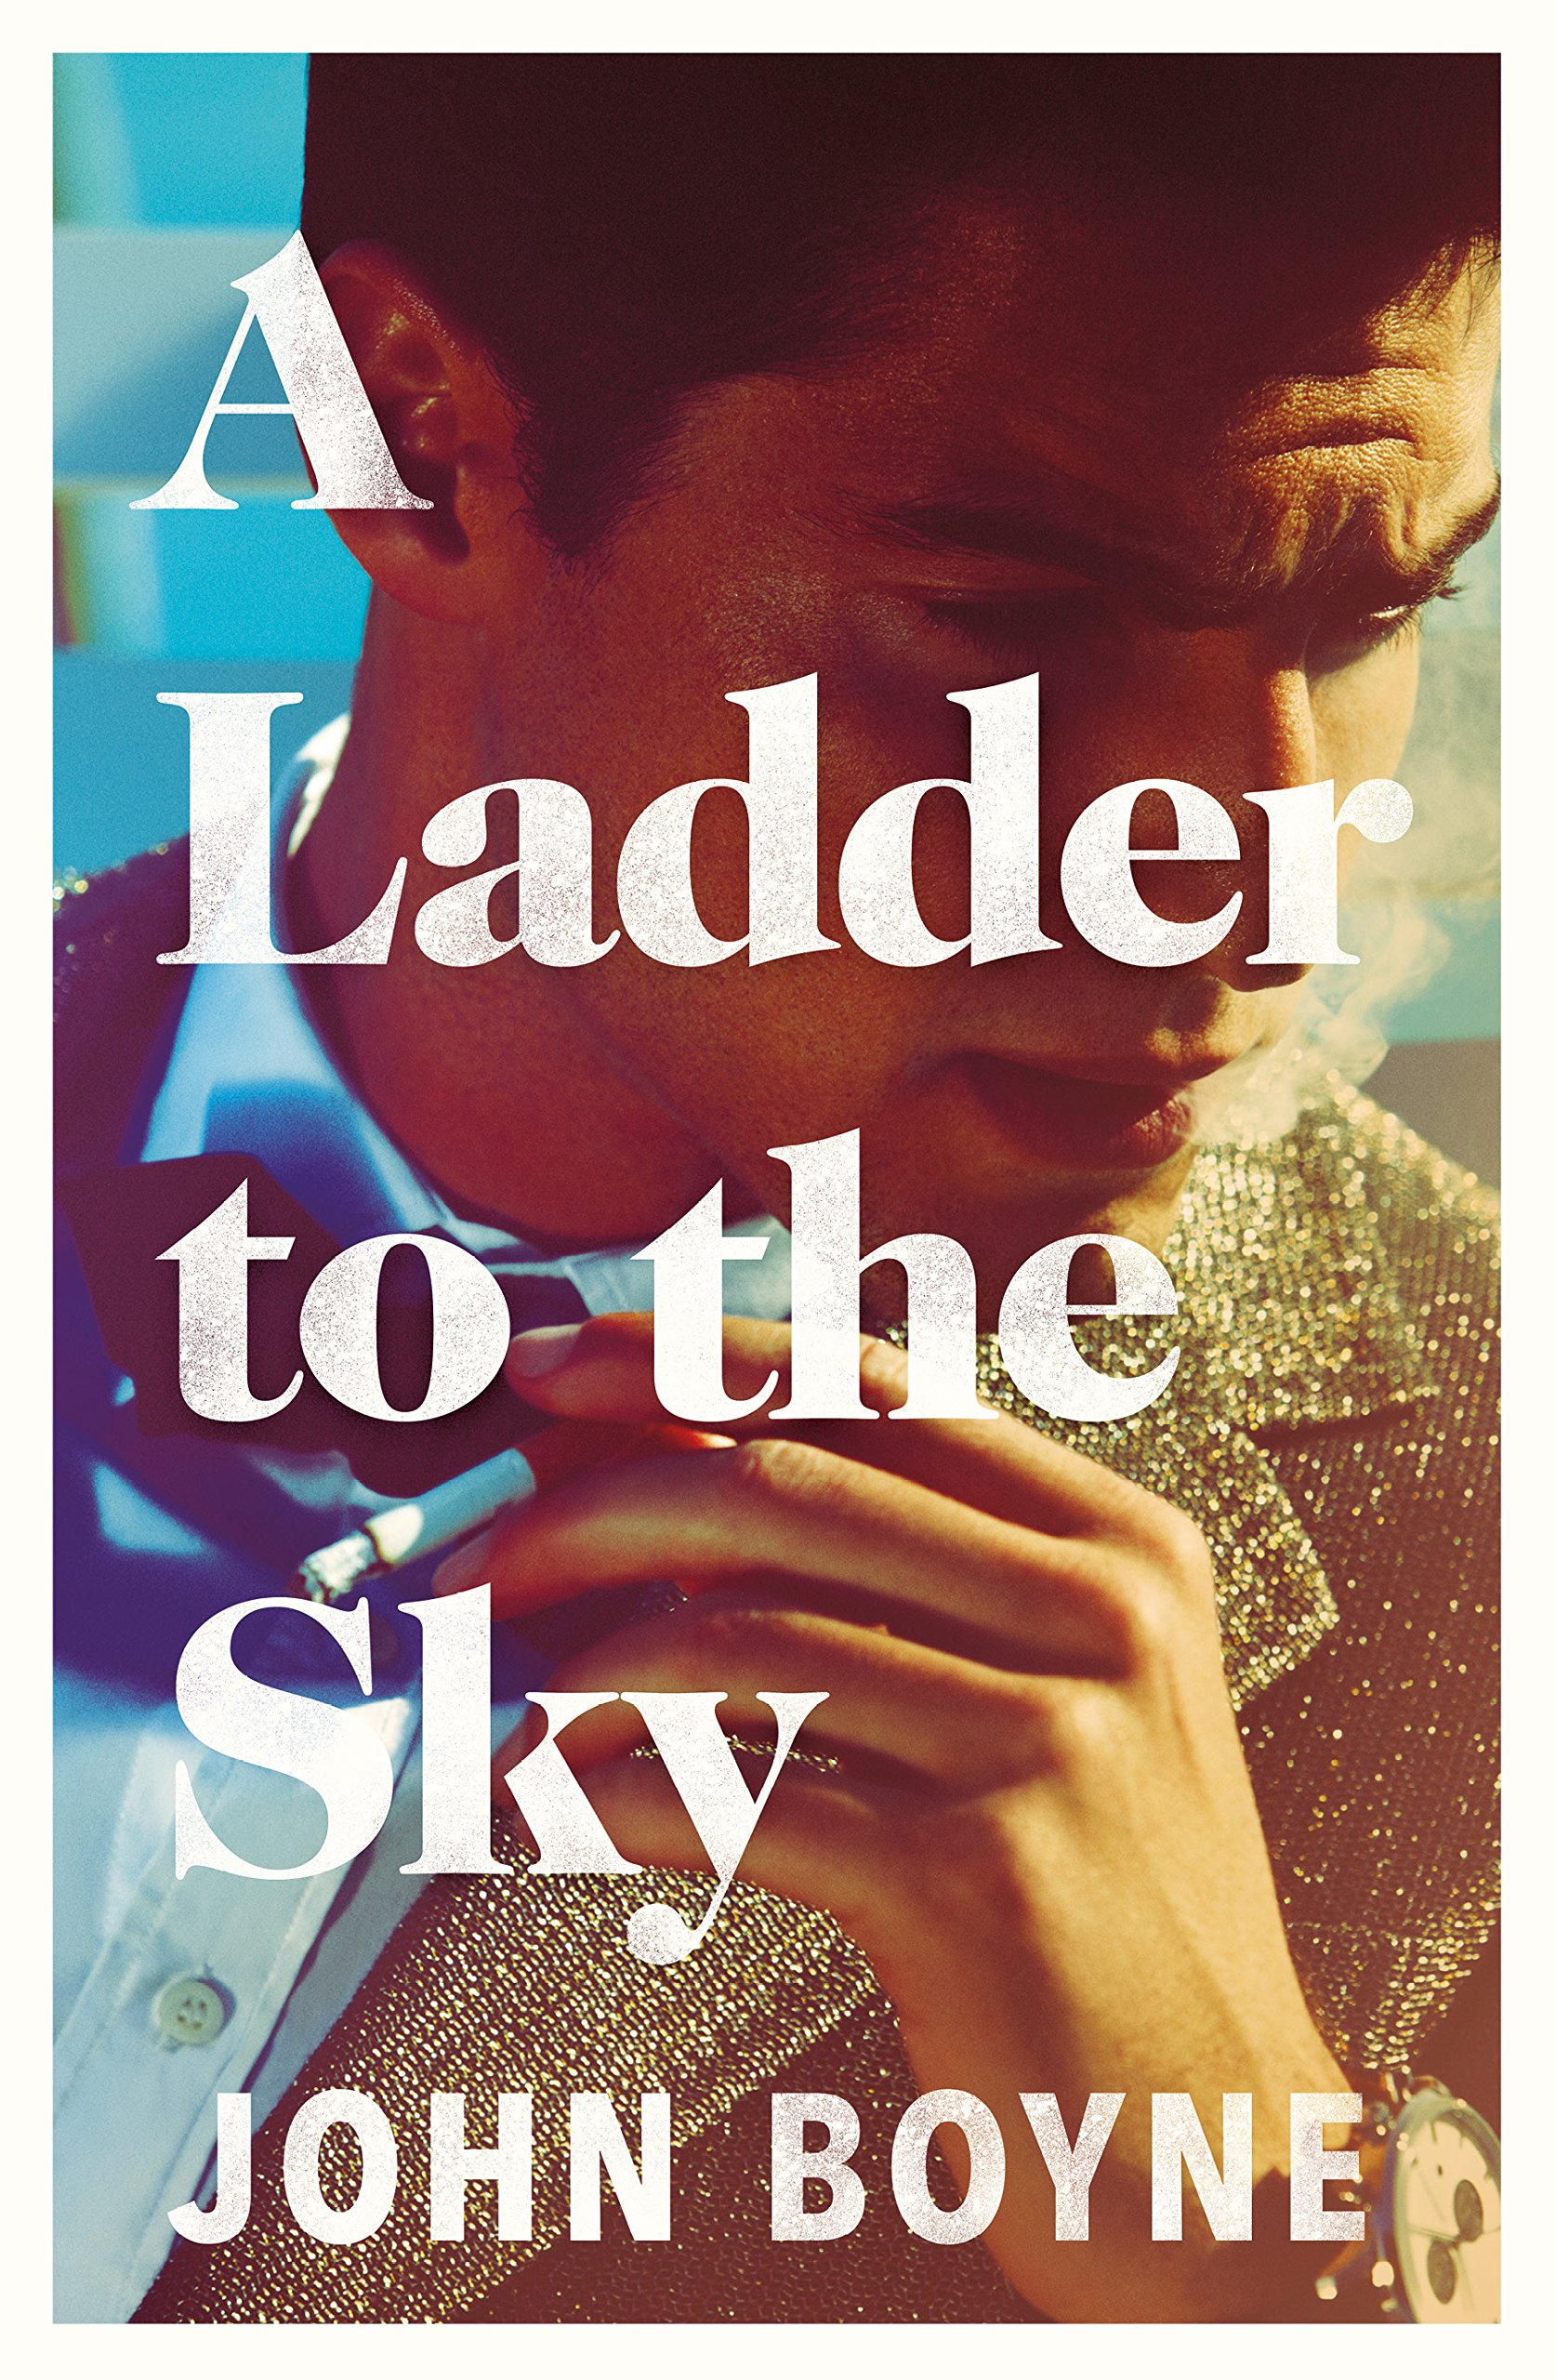 Image result for ladder to the sky john boyne